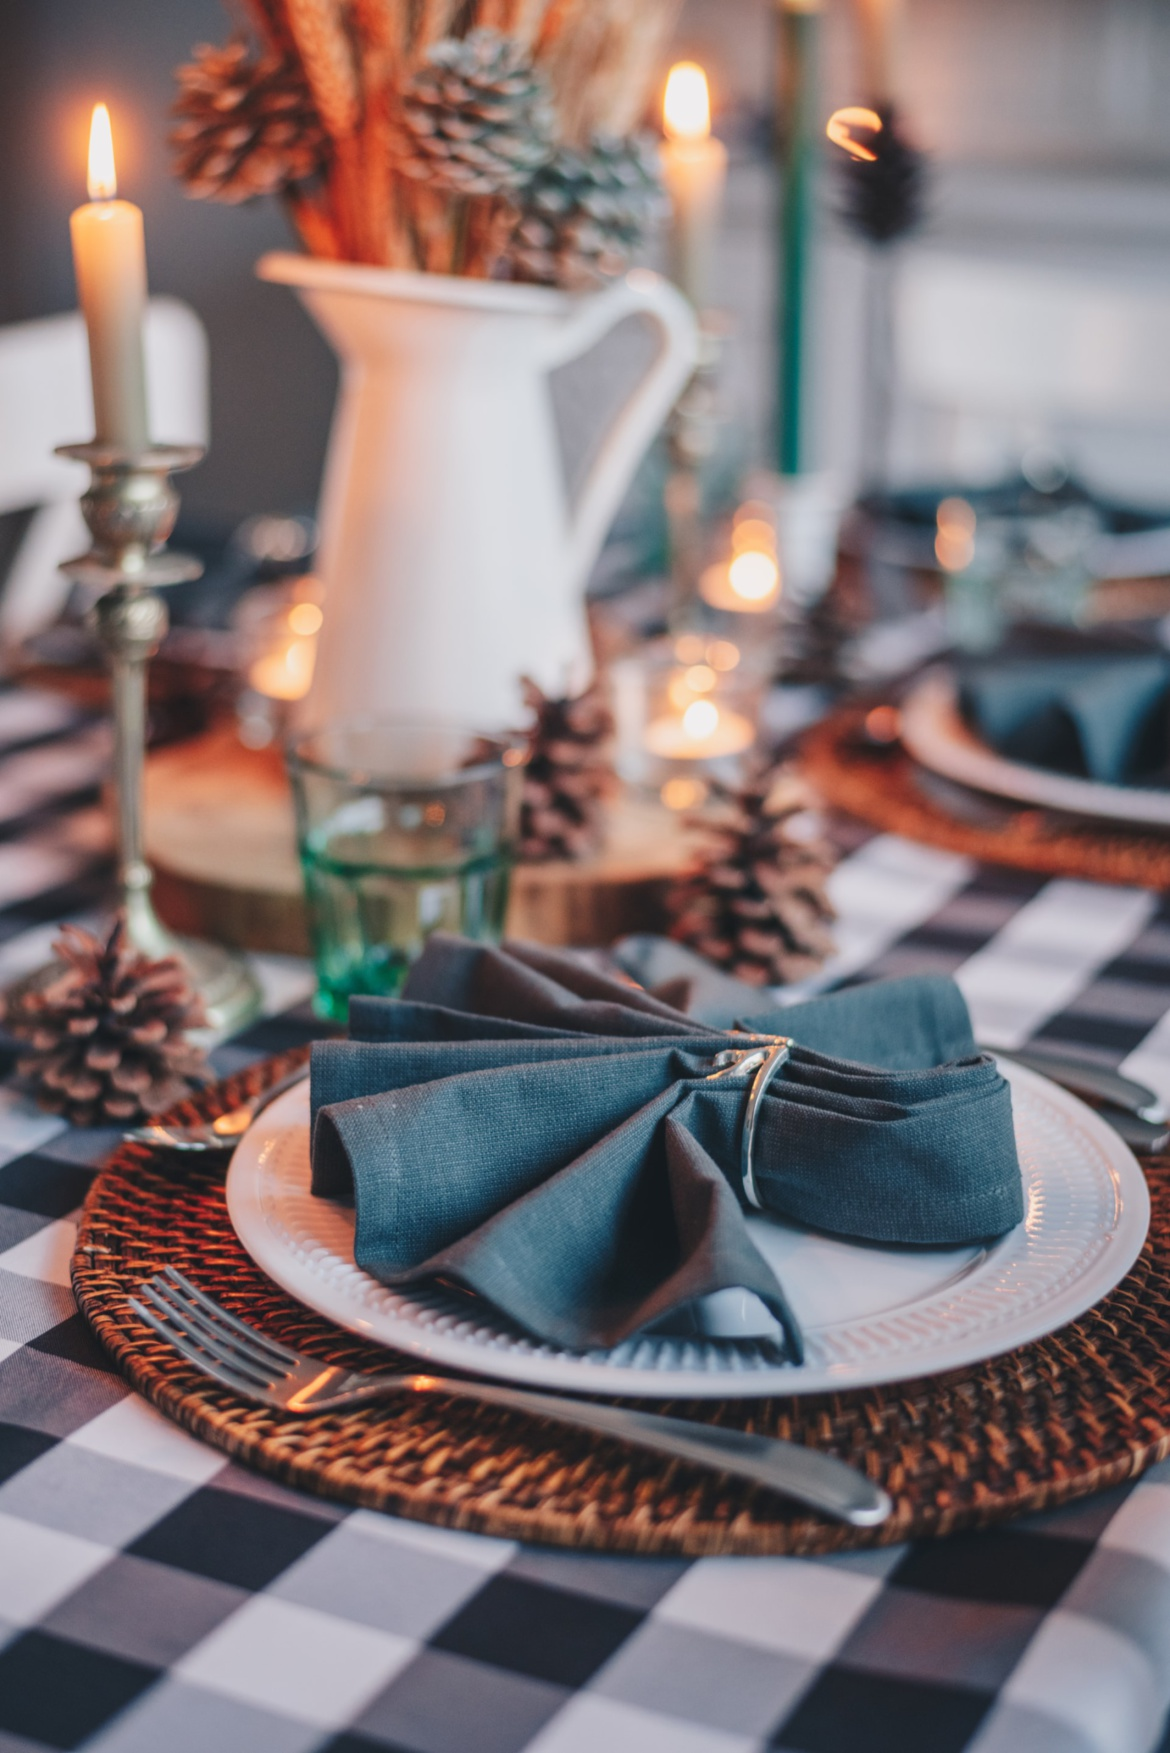 winter-place-setting-scaled.jpg